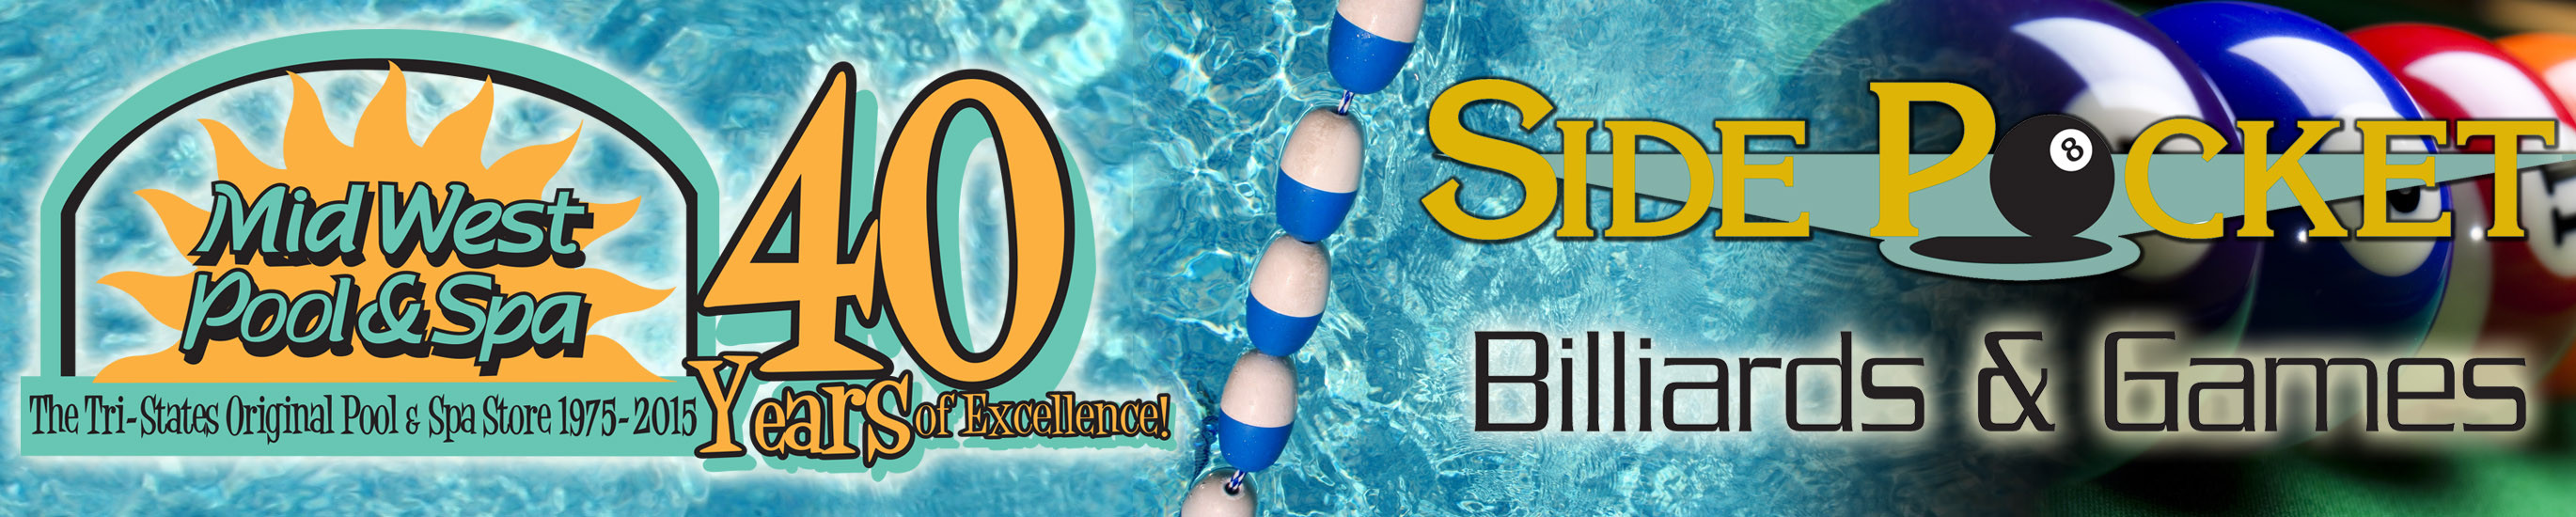 Midwest Pool & Spa and Side Pocket Billiards